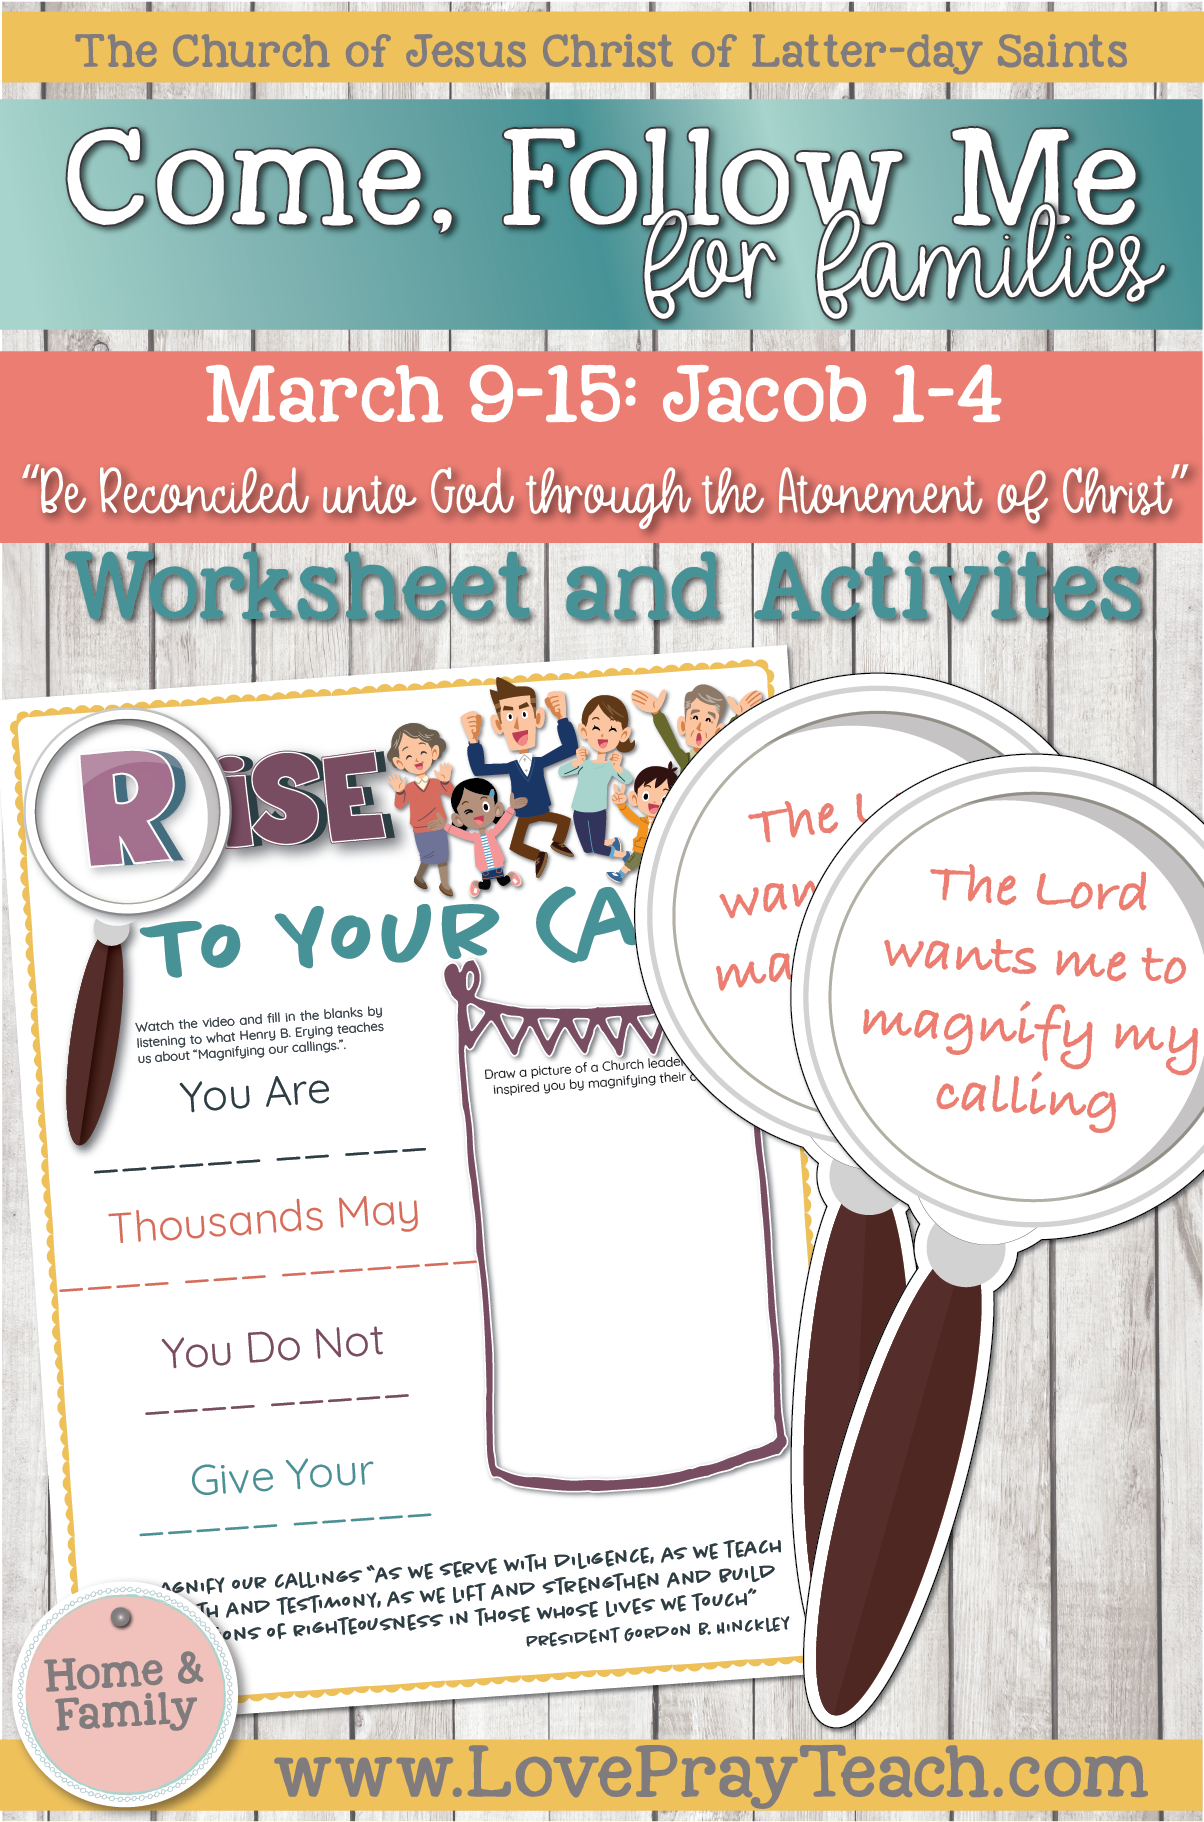 """Come, Follow Me—For Individuals and Families: Book of Mormon 2020 March Week 3: March 9–15 Jacob 1-4 """"Be Reconciled unto God through the Atonement of Christ"""""""